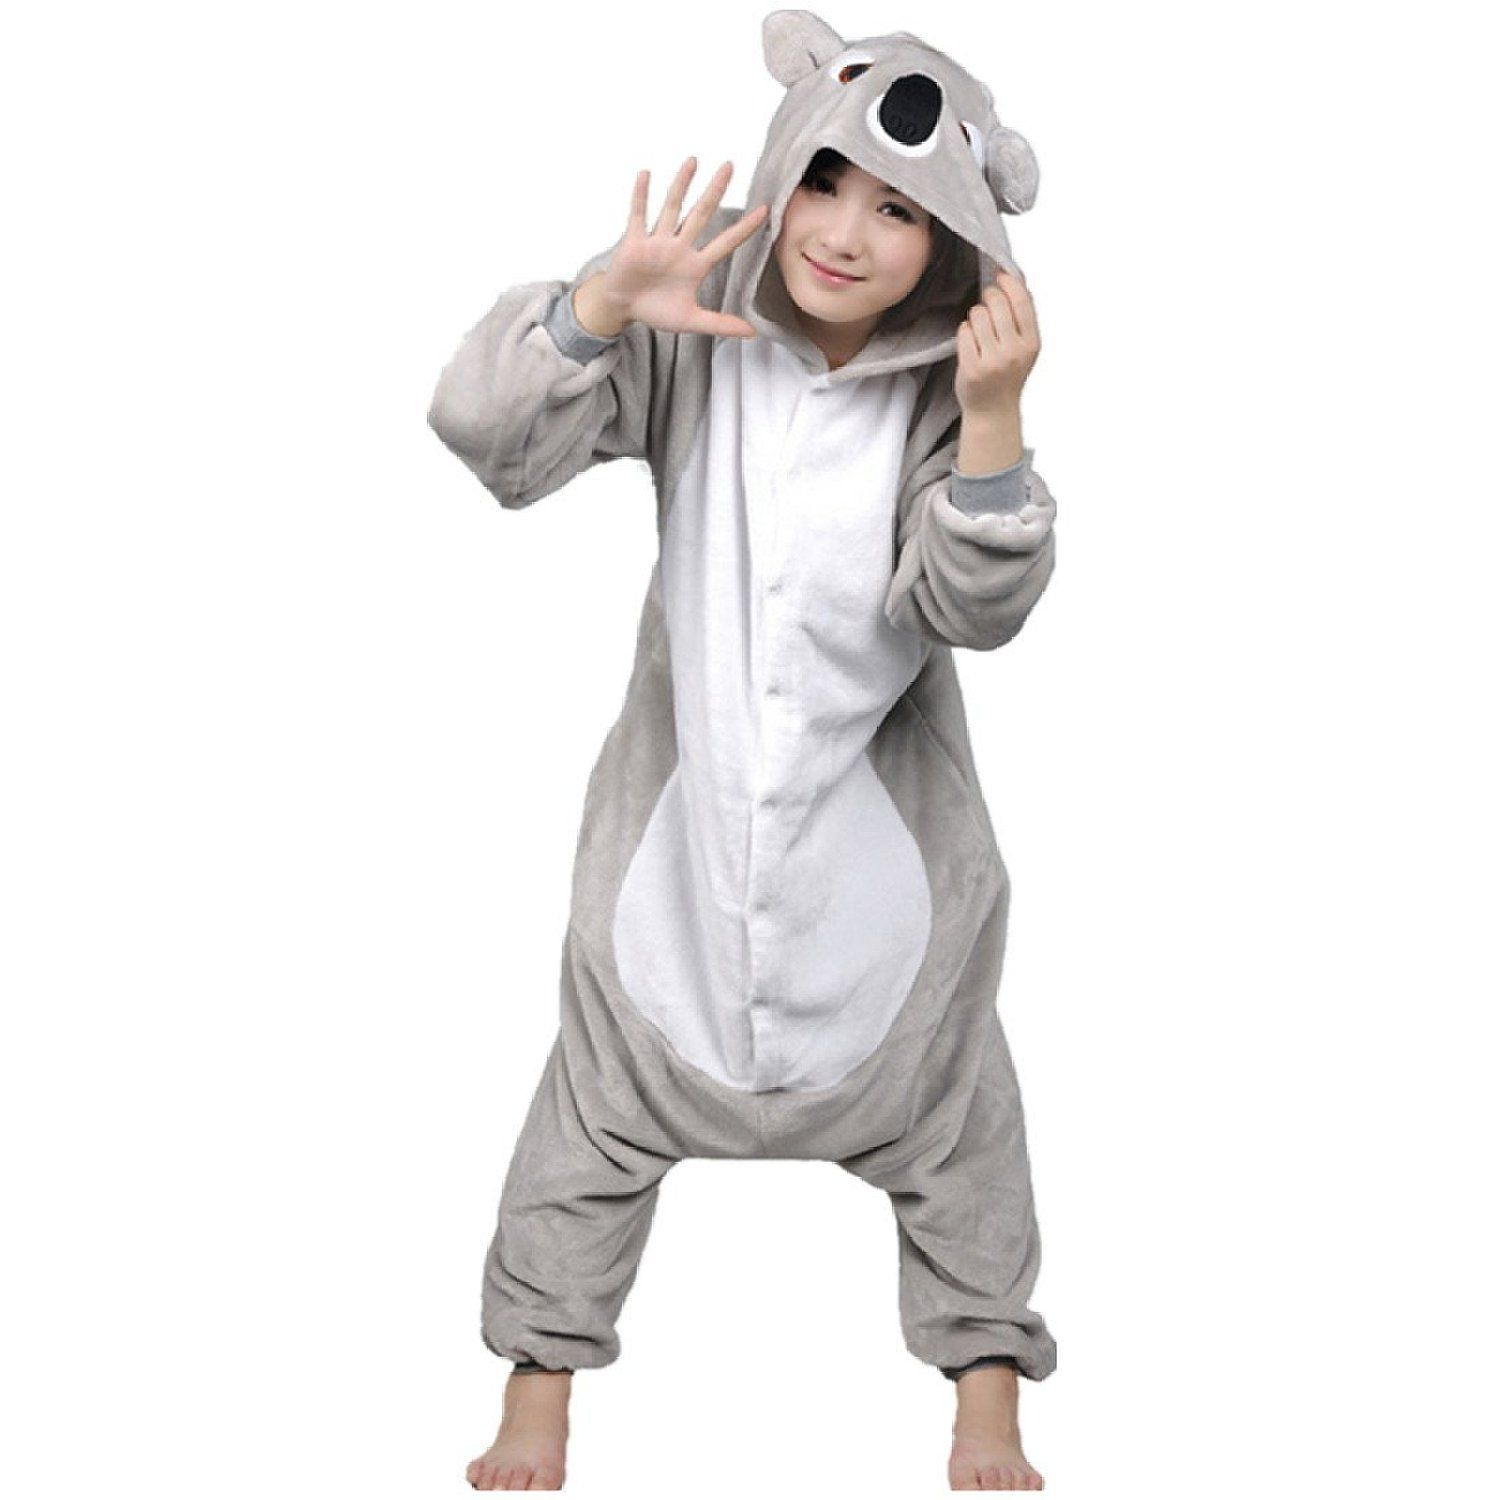 L Grey LIHAO Unisex Adult Pajamas Animal Cosplay Costume Onesie Sleepwear Pajamas Size